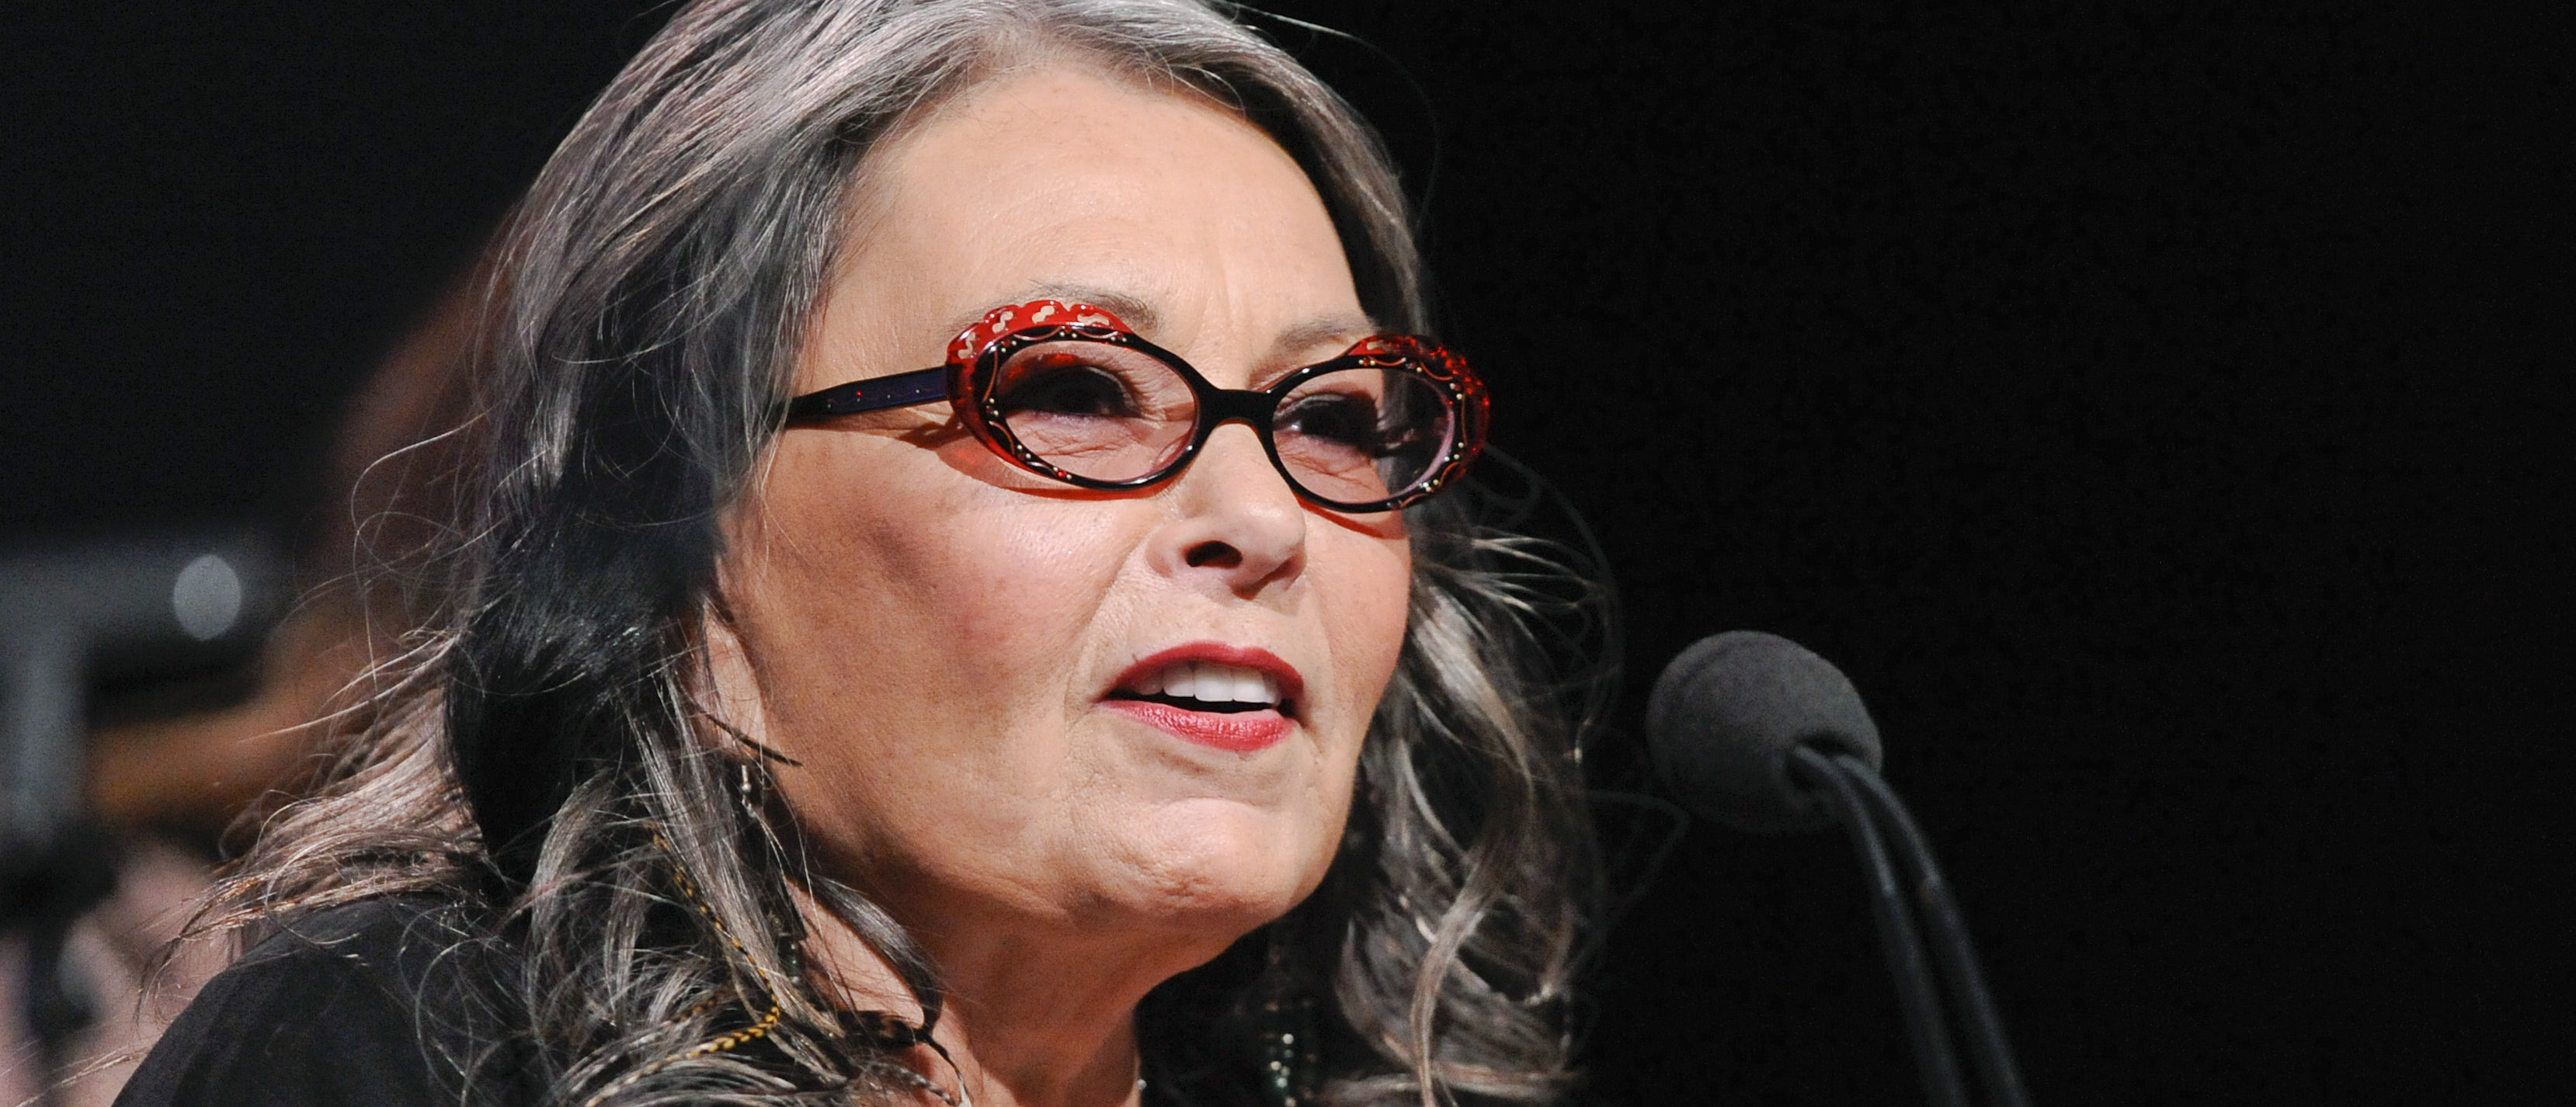 "Actress and reality show personality Roseanne Barr from the television show ""Roseanne's Nuts"" addresses the media during the Lifetime channel portion of the Press Tour for the Television Critics Association in Beverly Hills, California, July 27, 2011. REUTERS/Gus Ruelas (UNITED STATES - Tags: ENTERTAINMENT) - GM1E77S0M6H01"